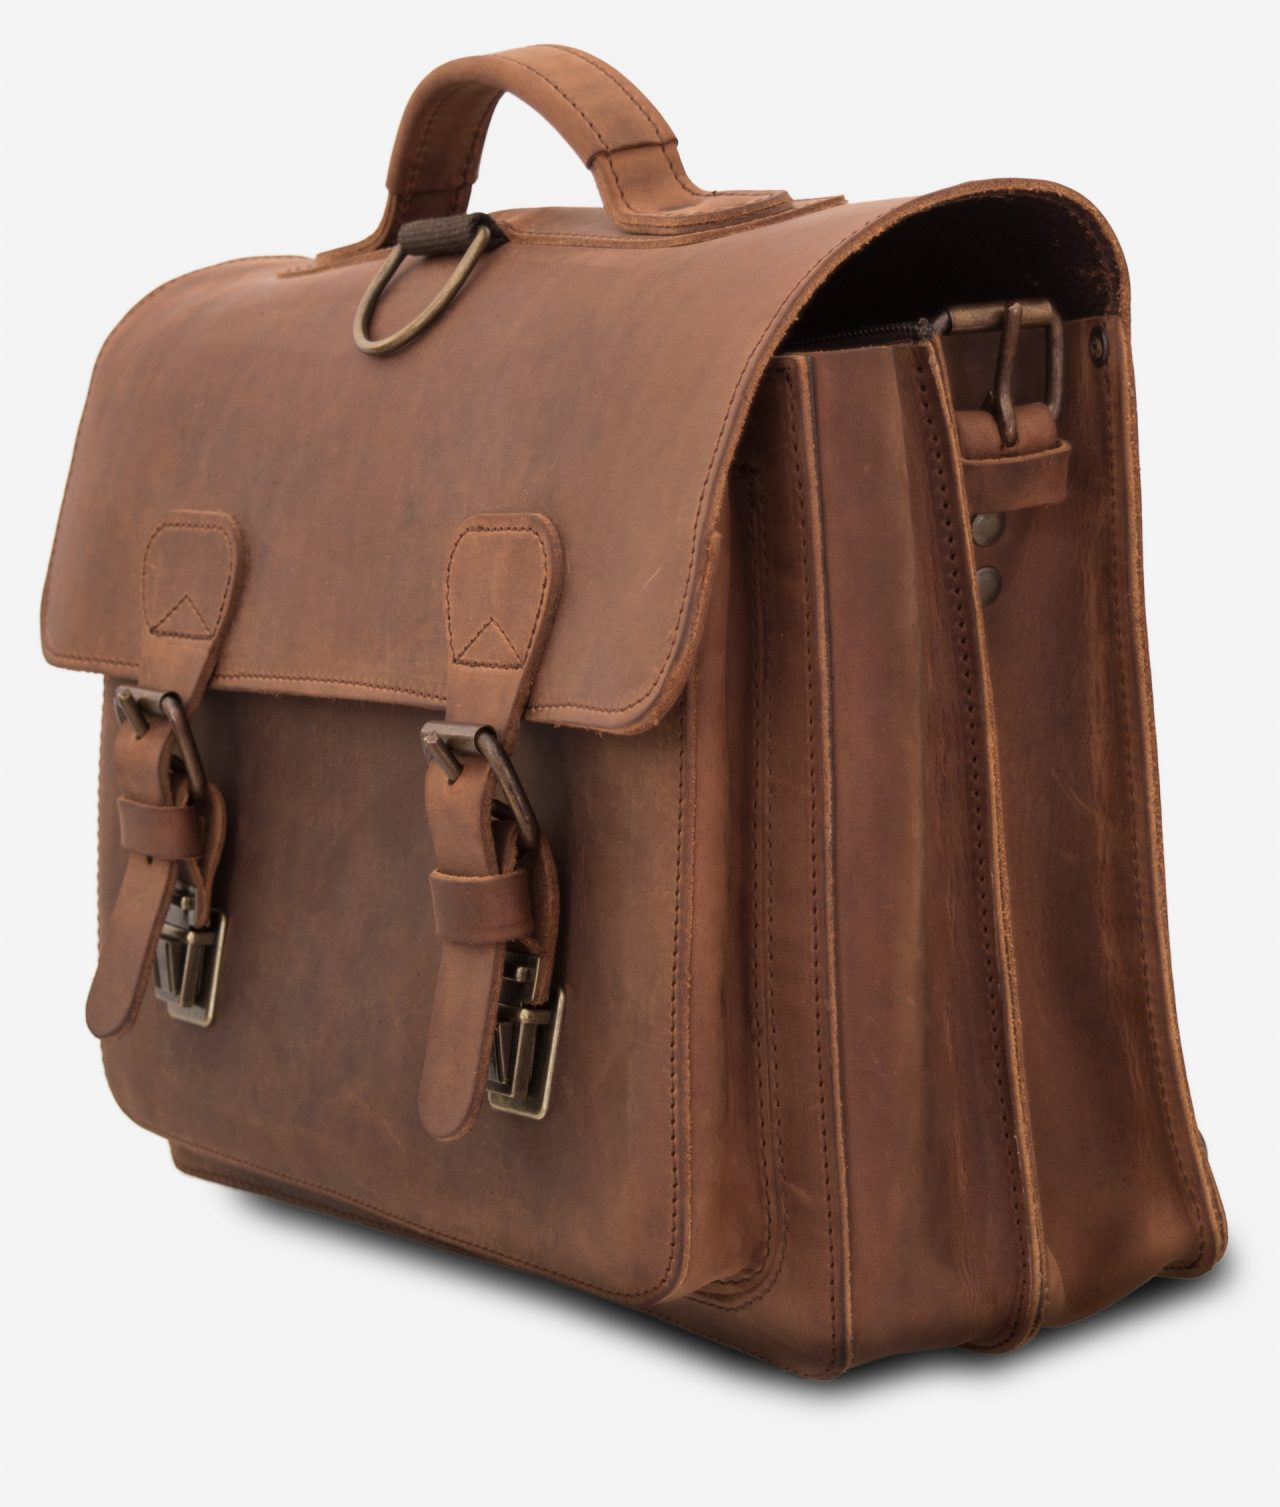 Side view of the student brown leather satchel with 2 compartments and 1 front pocket.